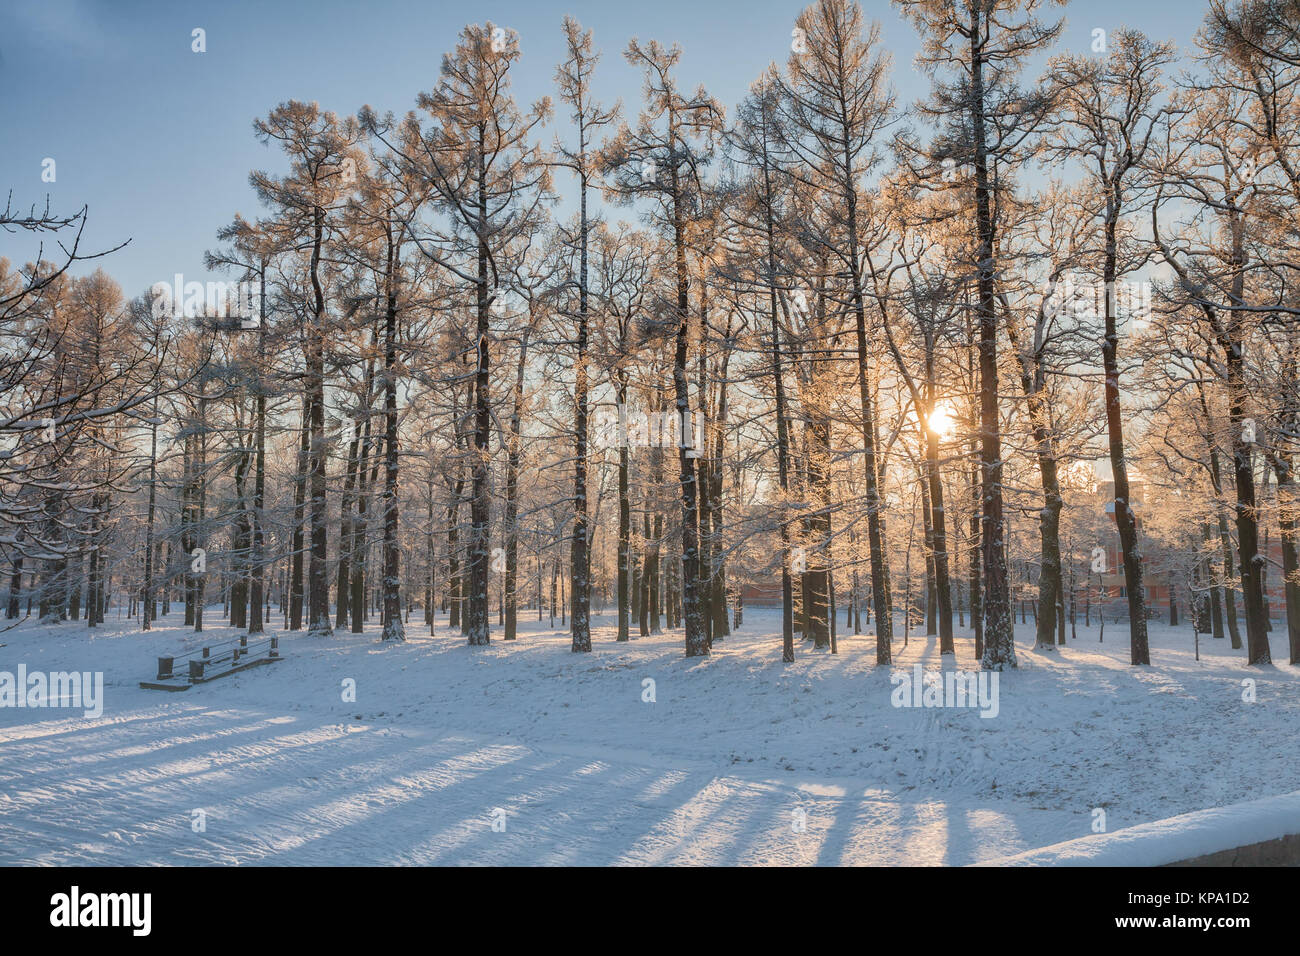 Low winter sun shines through snow-covered trees in the park, St. Petersburg, Russia - Stock Image